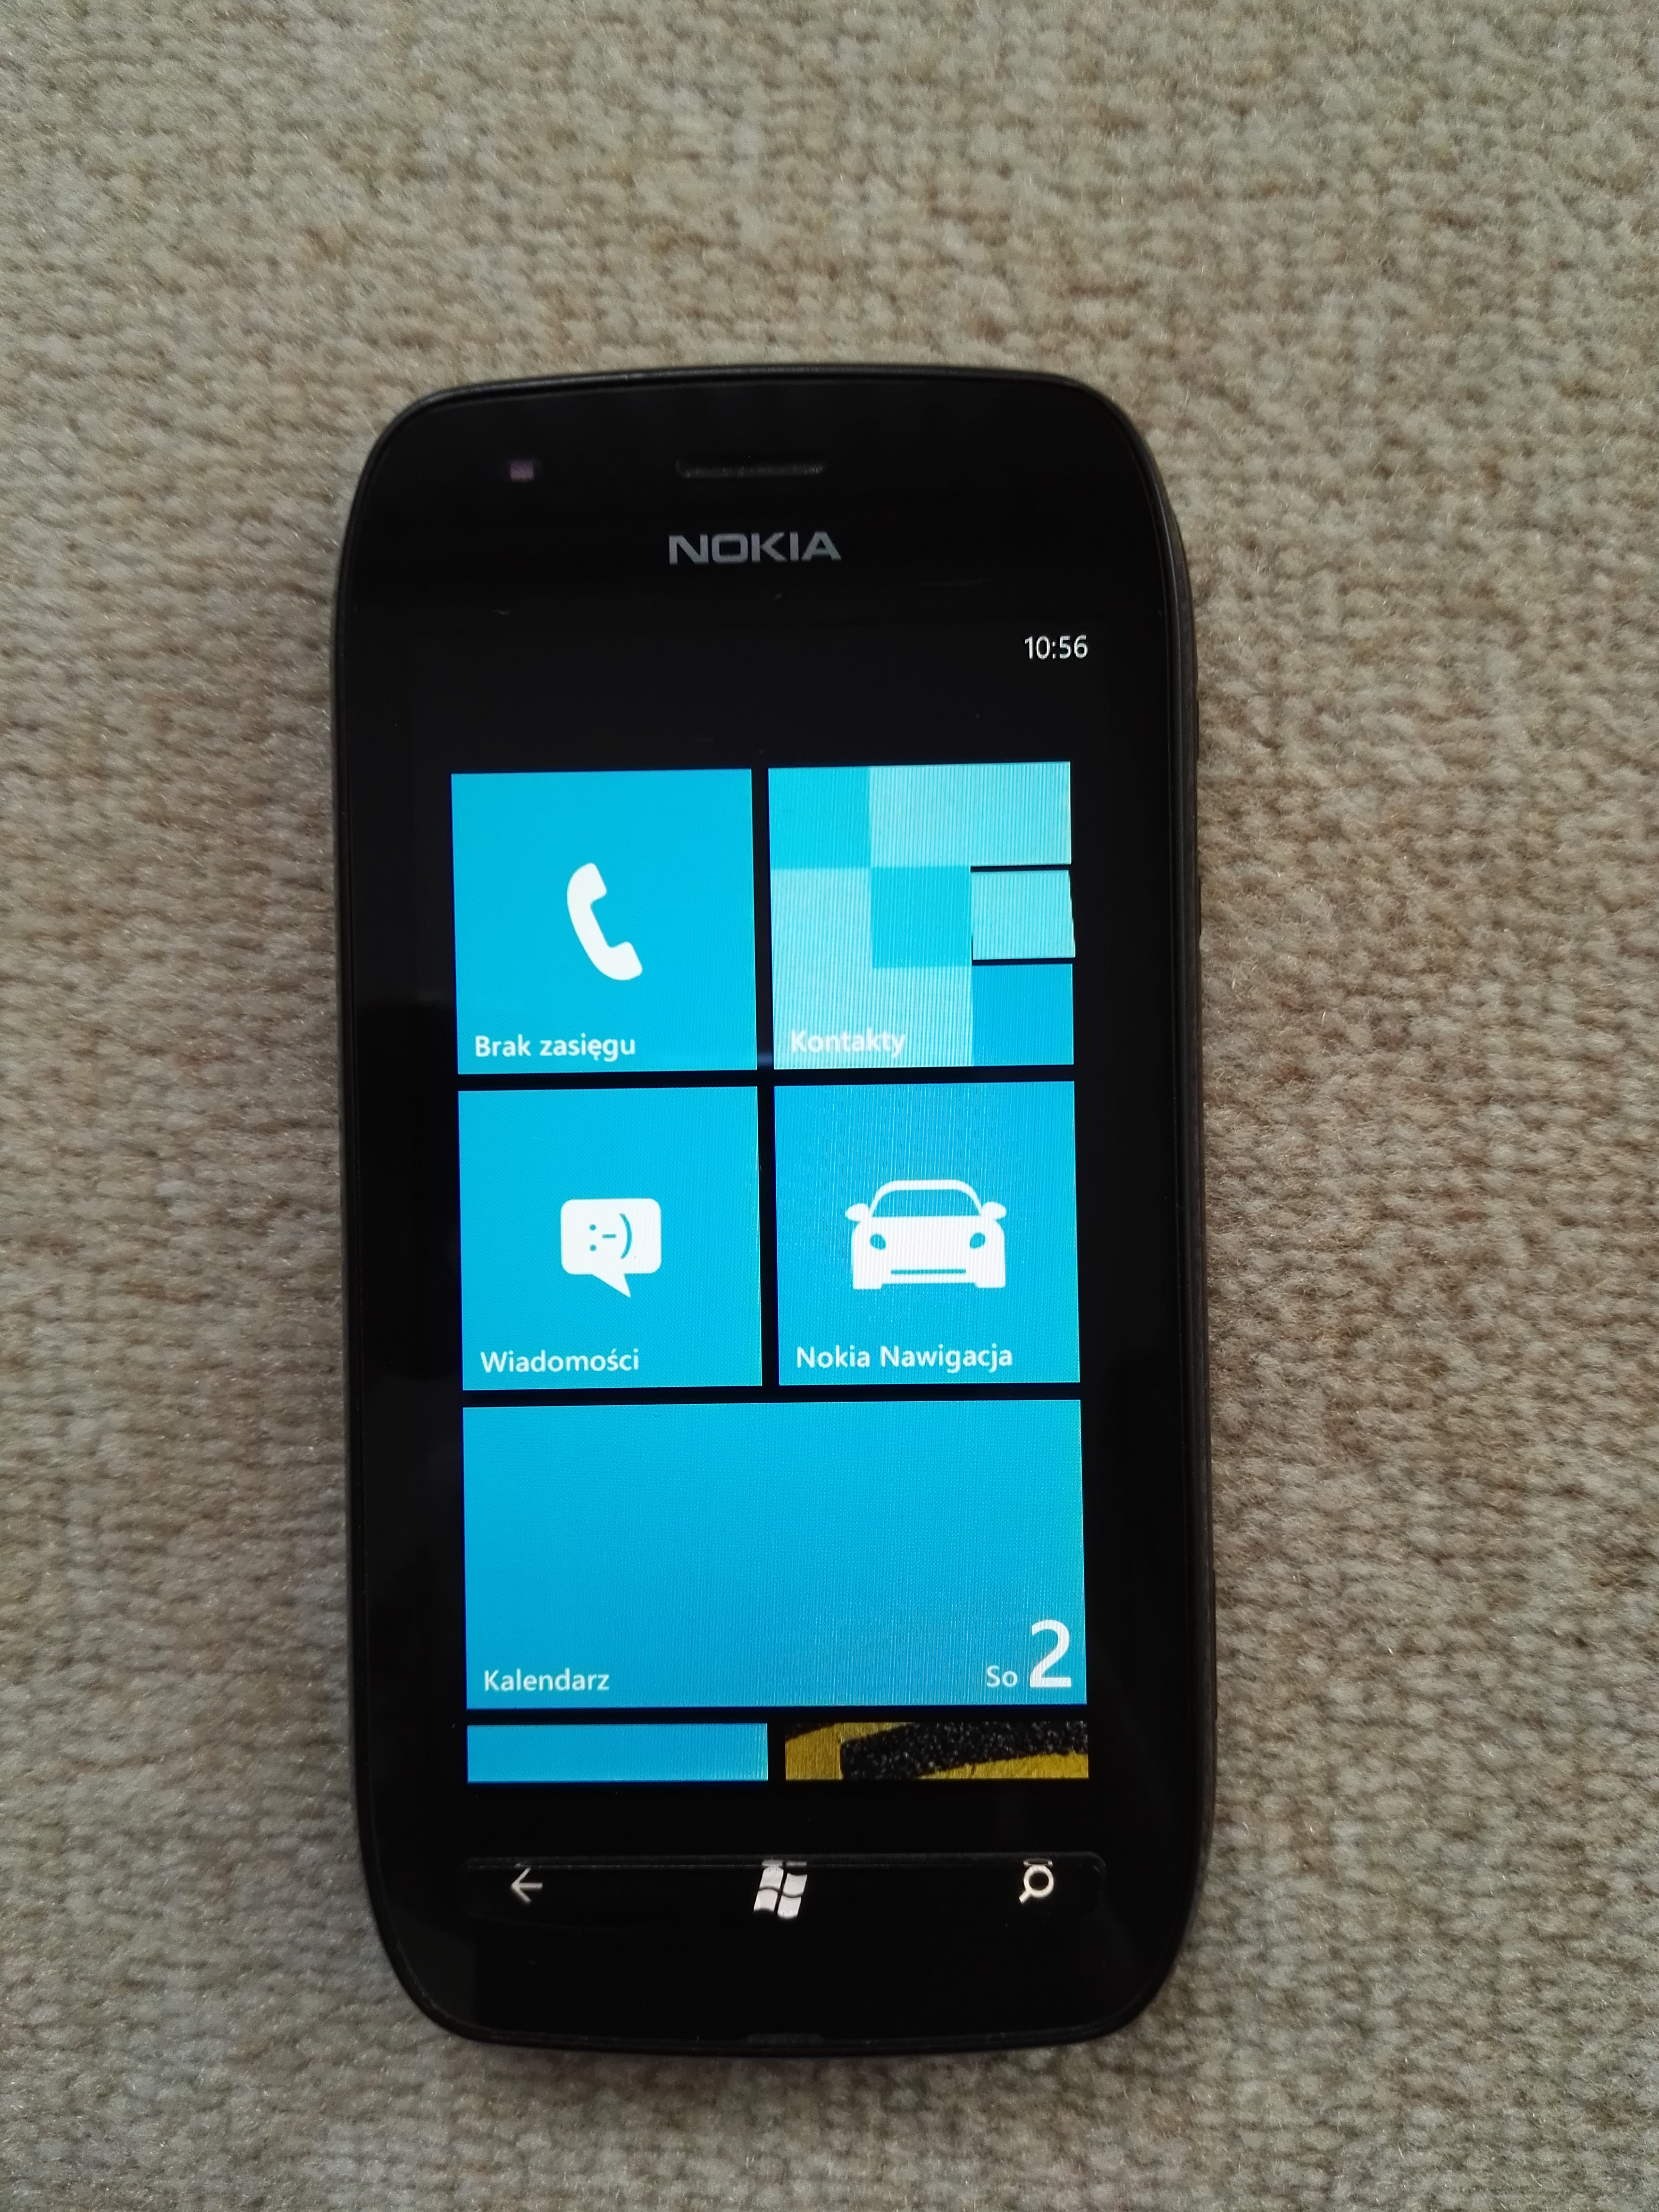 RM-809 NOKIA LUMIA 710 DRIVERS FOR MAC DOWNLOAD